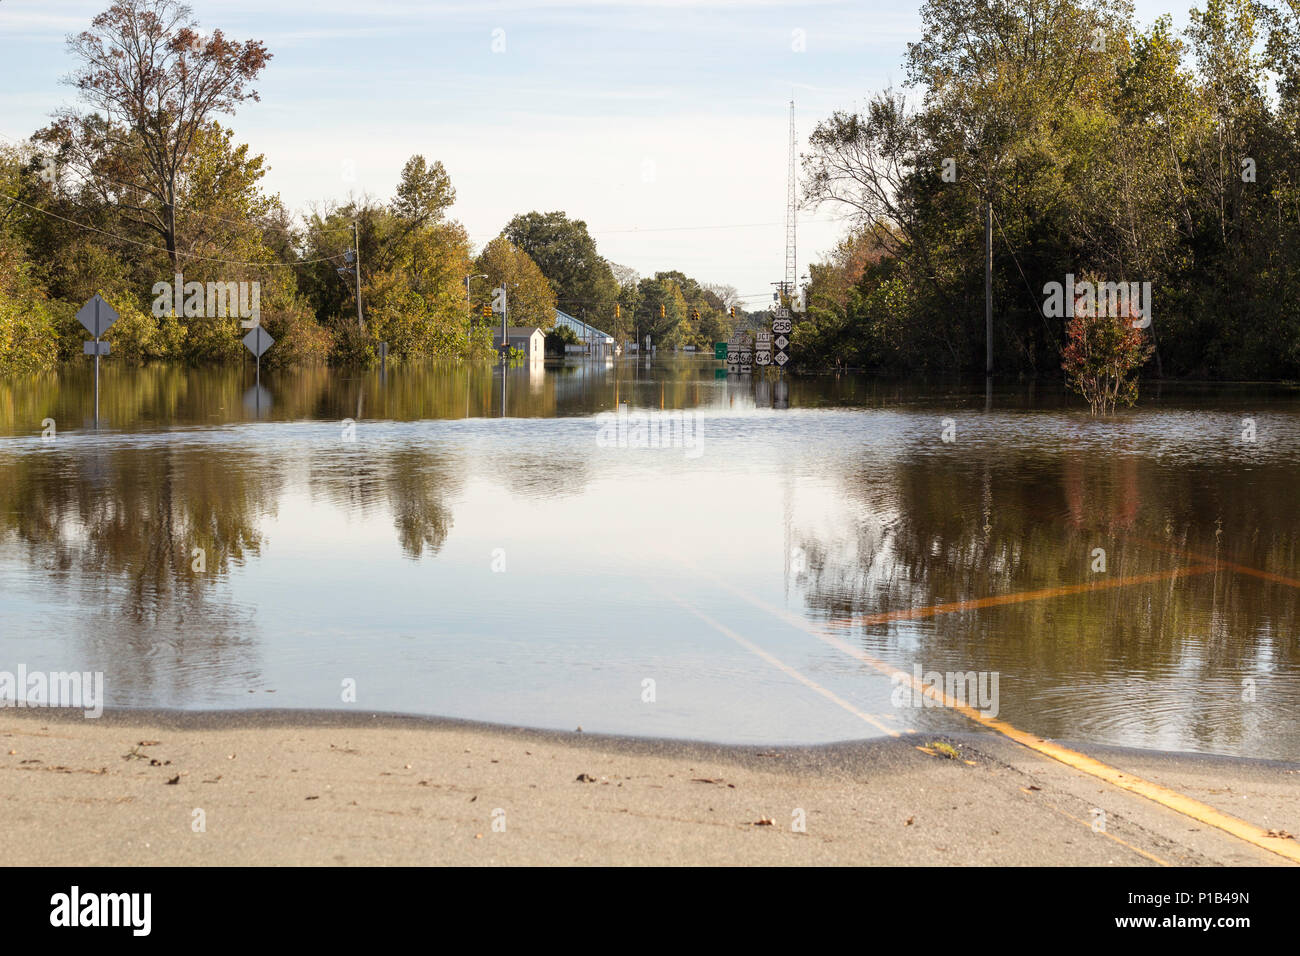 Twenty feet of water covers Princeville, North Carolina, in the week following Hurricane Matthew, on October 15, 2016. This historic town saw similar flooding during Hurricane Floyd in 1999. The North Carolina National Guard is assisting in the aftermath of Hurricane Matthew by beginning pumping operations that will pump one million gallons of water an hour into the Tar River and away from Princeville. - Stock Image